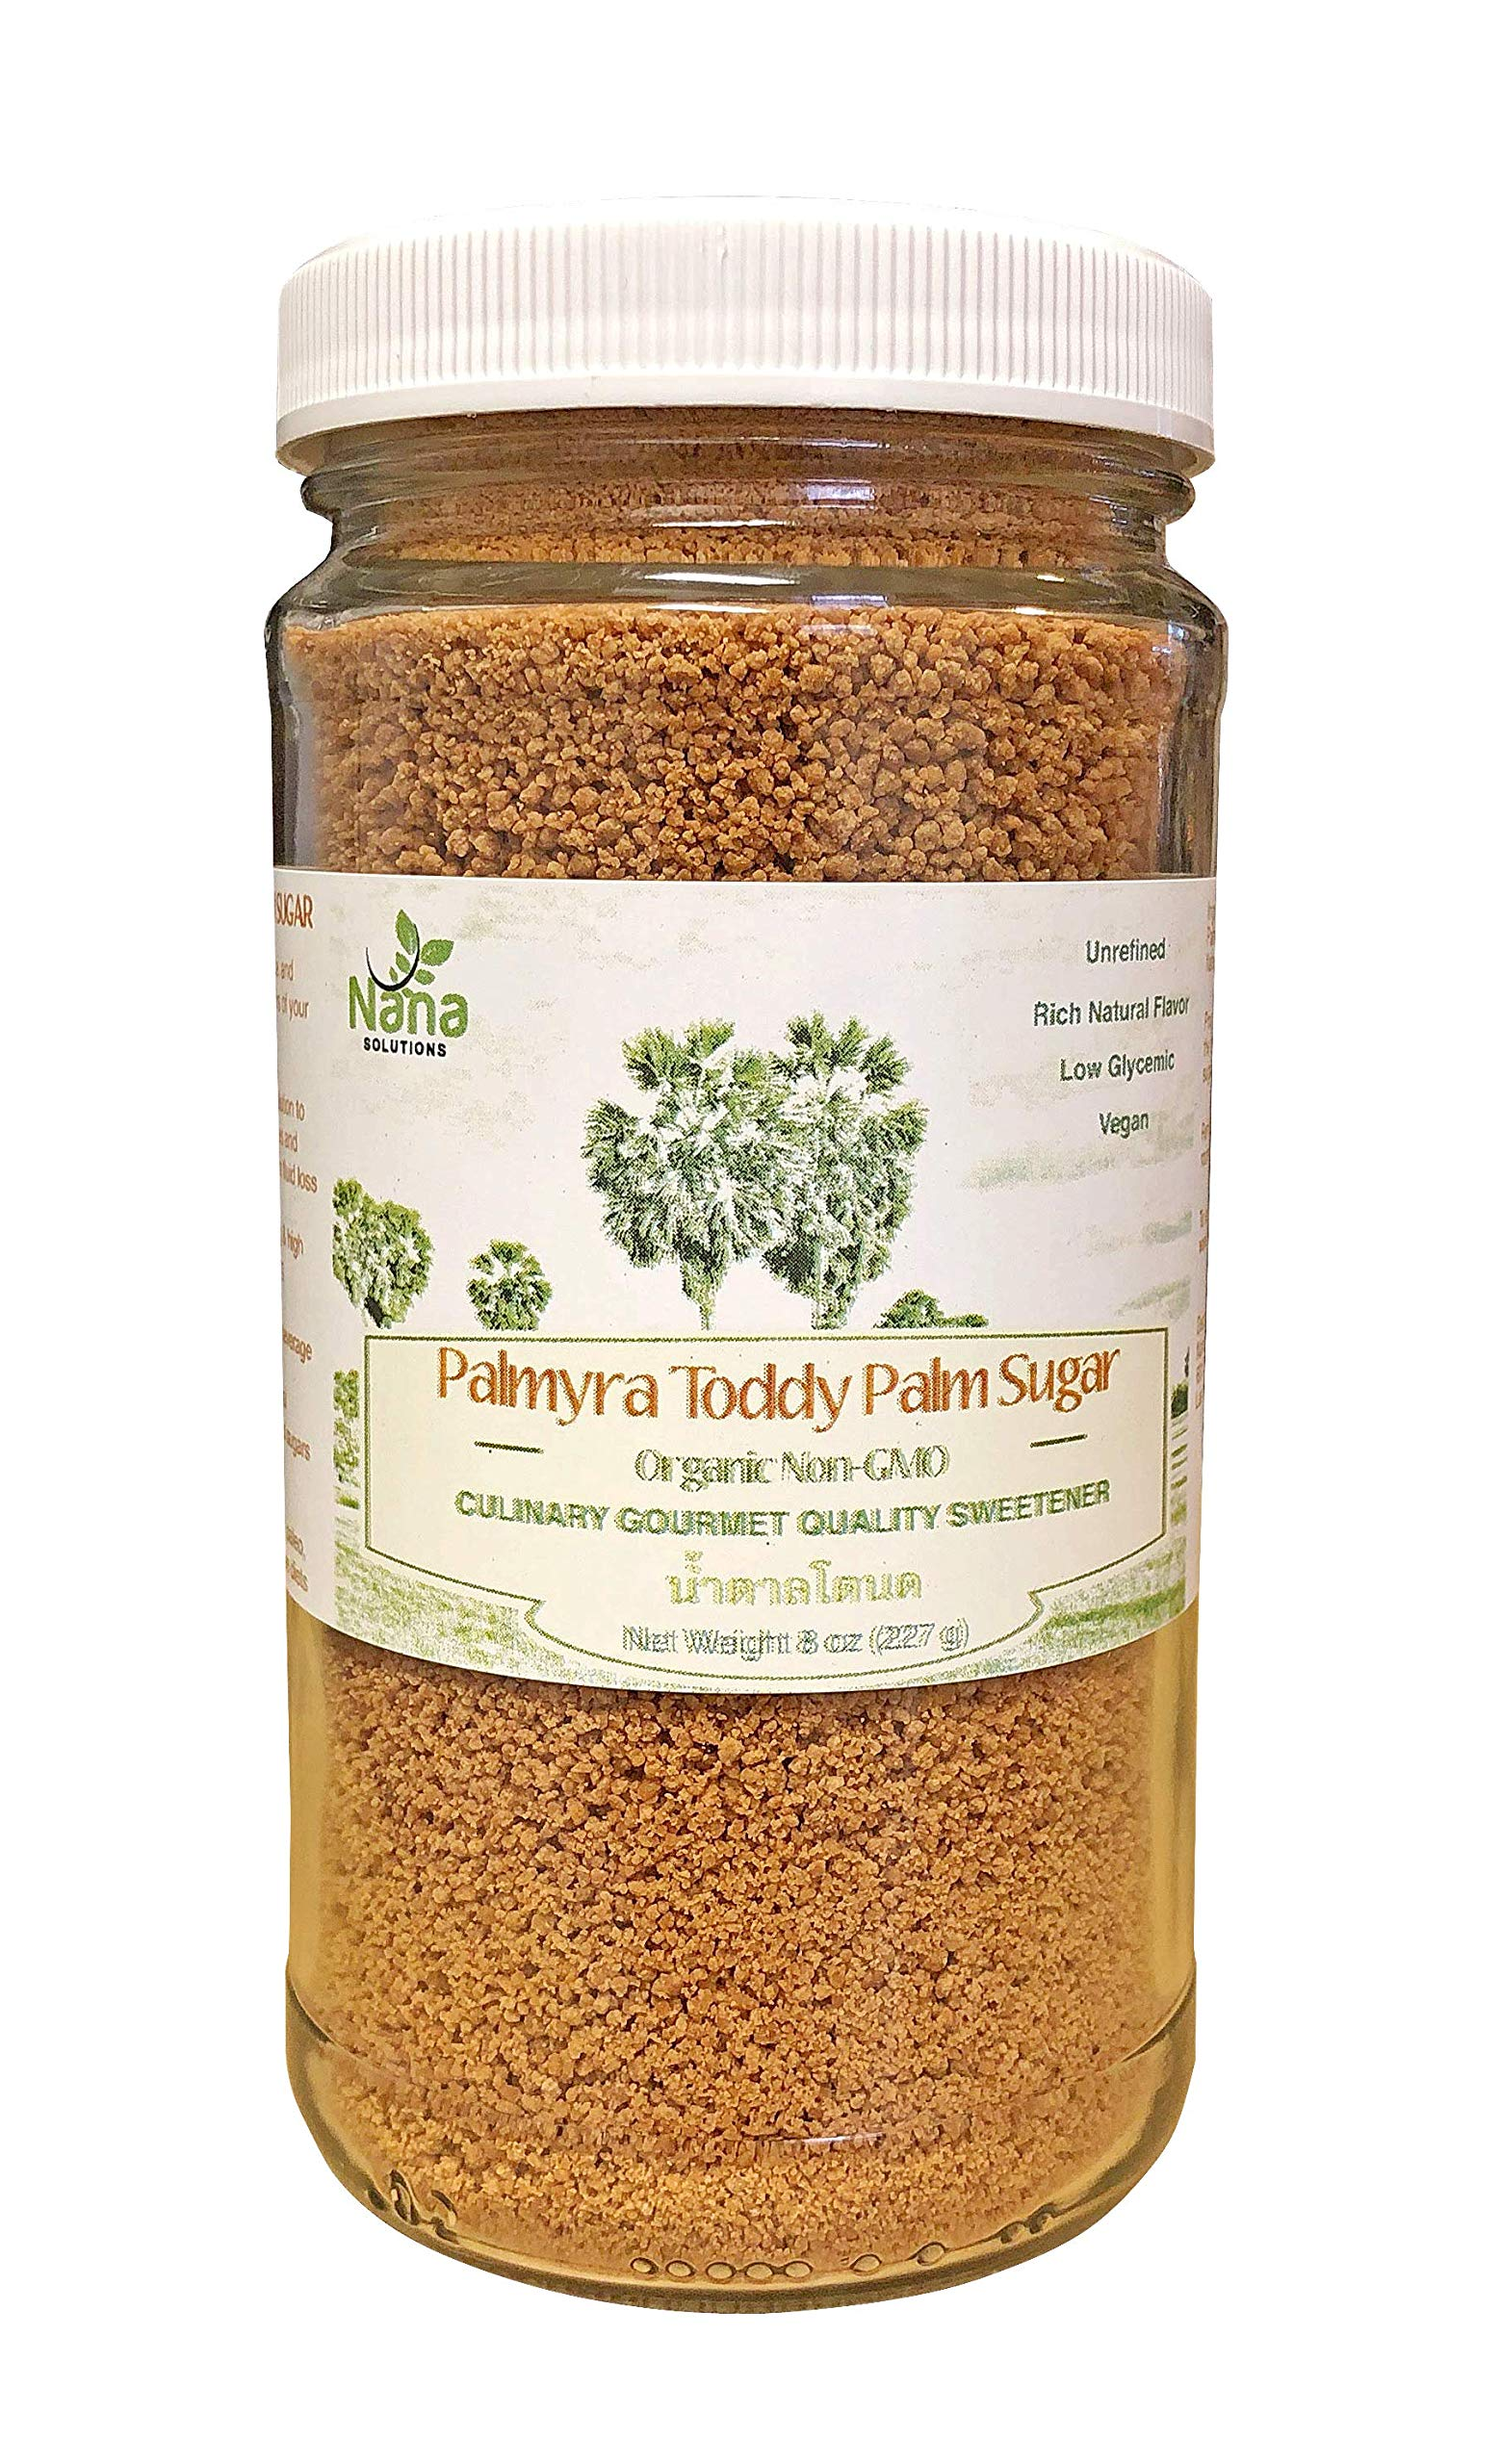 Palmyra Toddy Palm Sugar - Granulated | 100% Pure & Authentic | Low Glycemic Unrefined Natural Sweetener